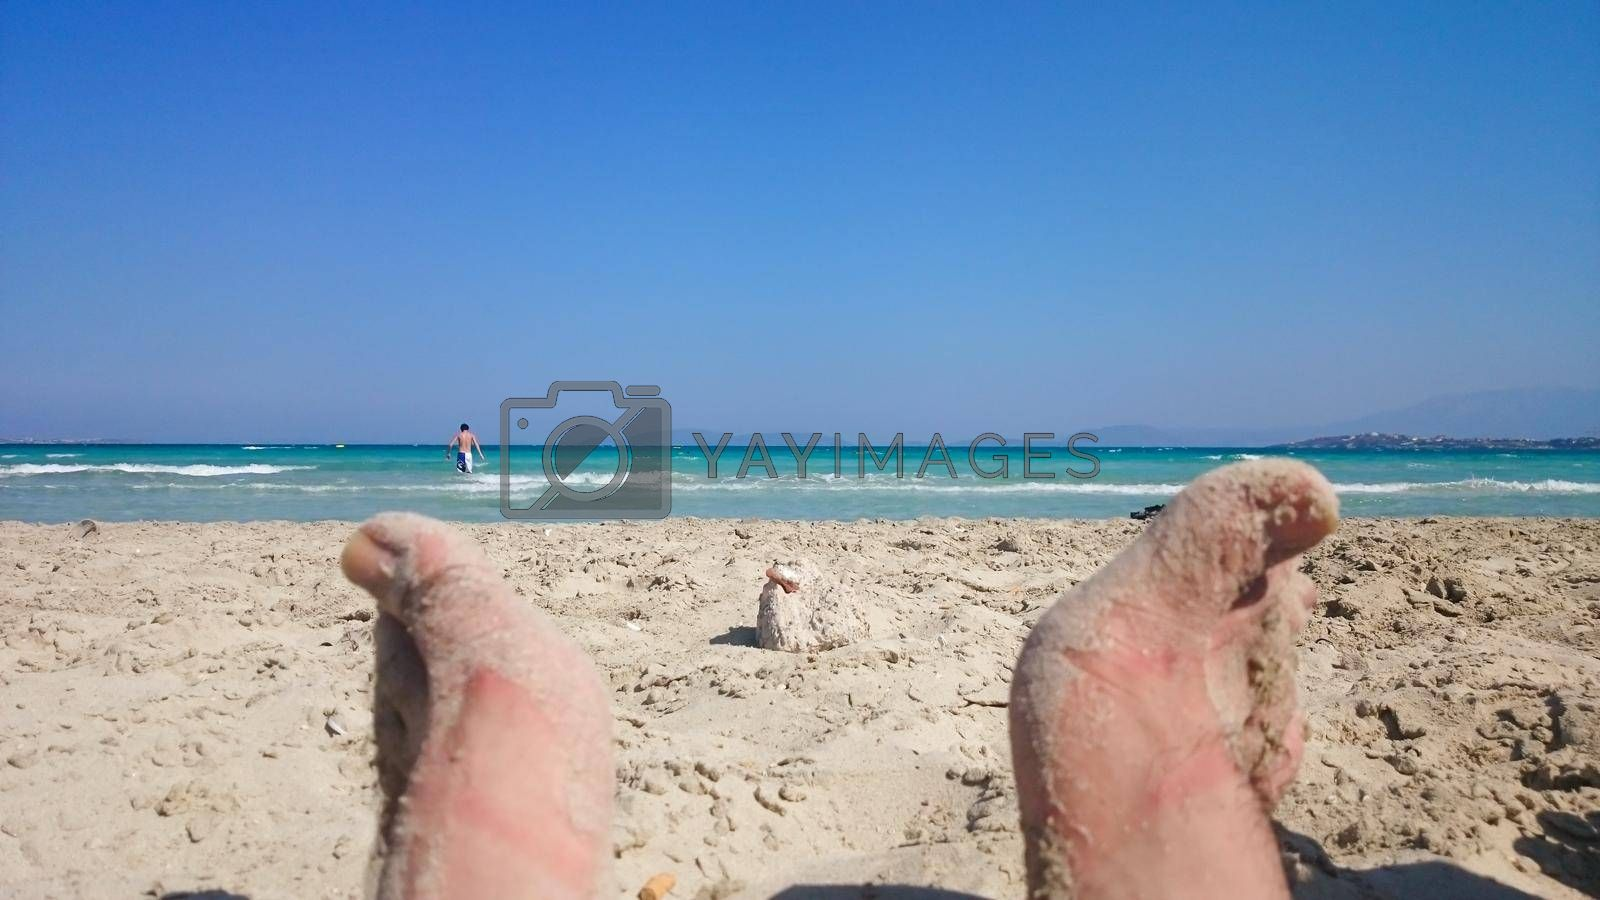 It depicts toes of a male person in a beach in a sunny day